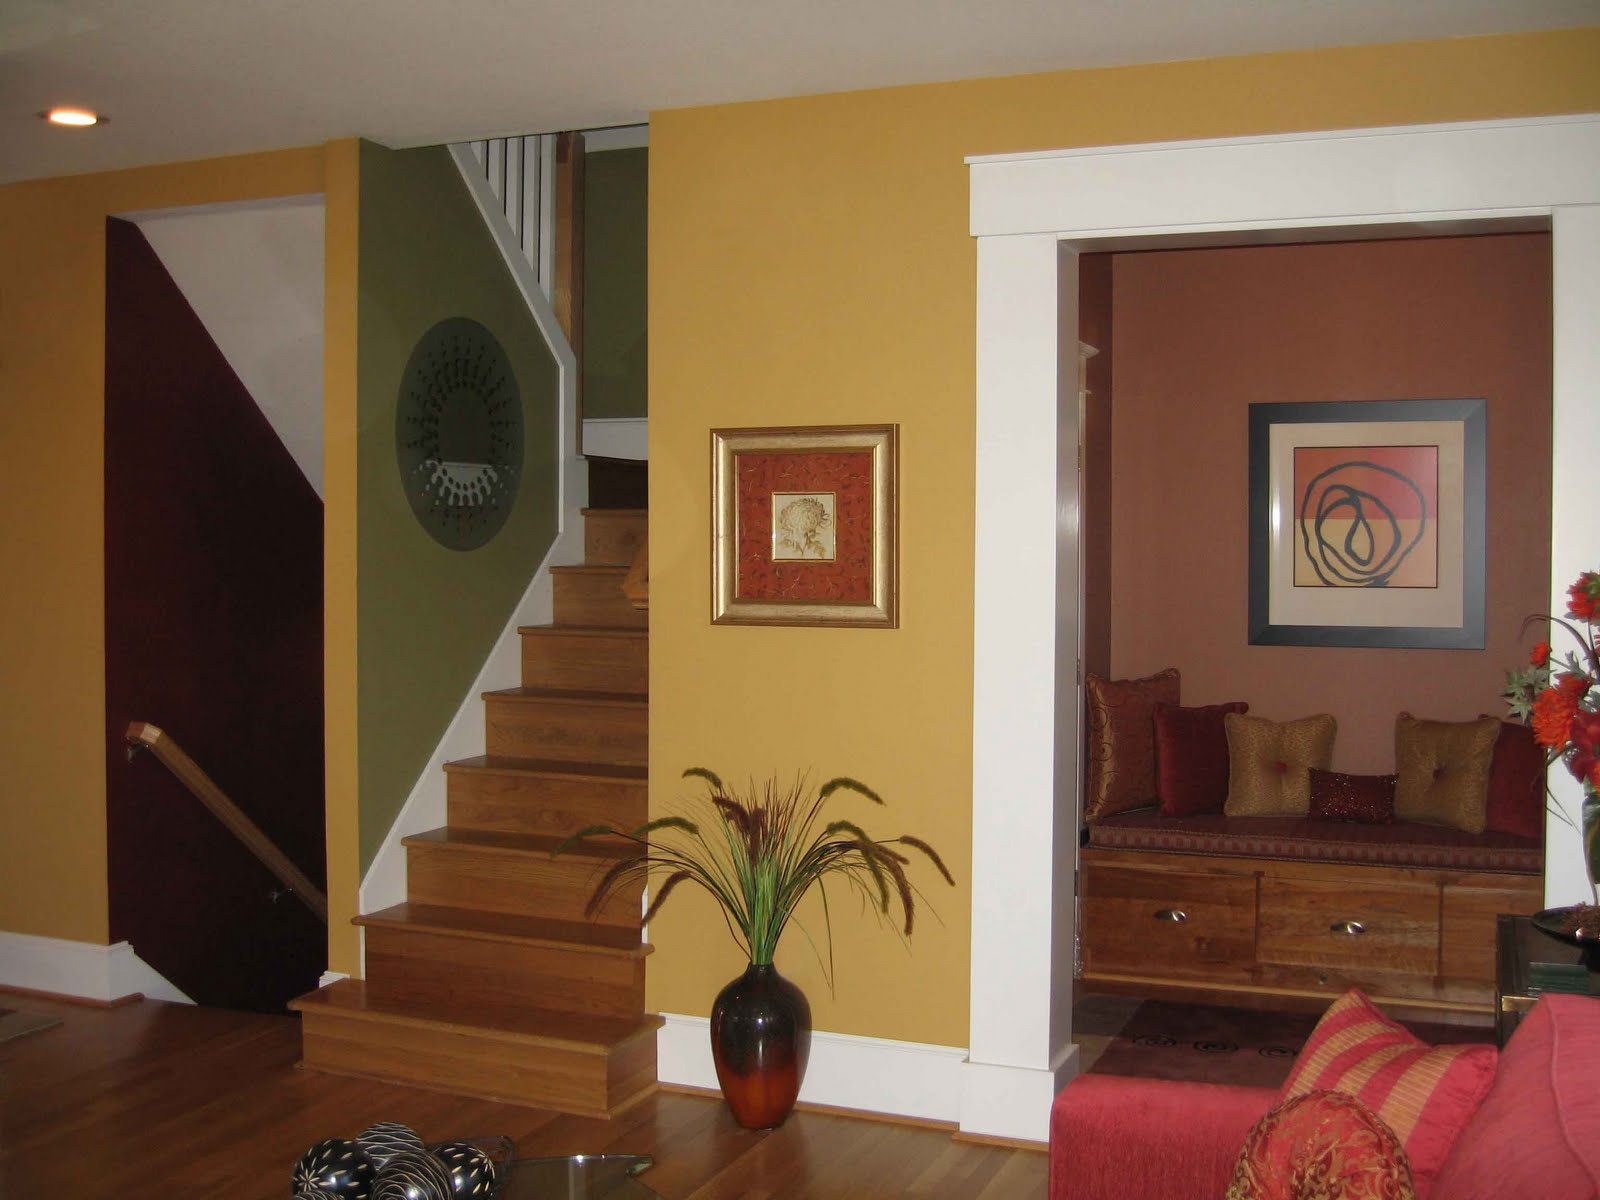 Interior Spaces Interior Paint Color Specialist in